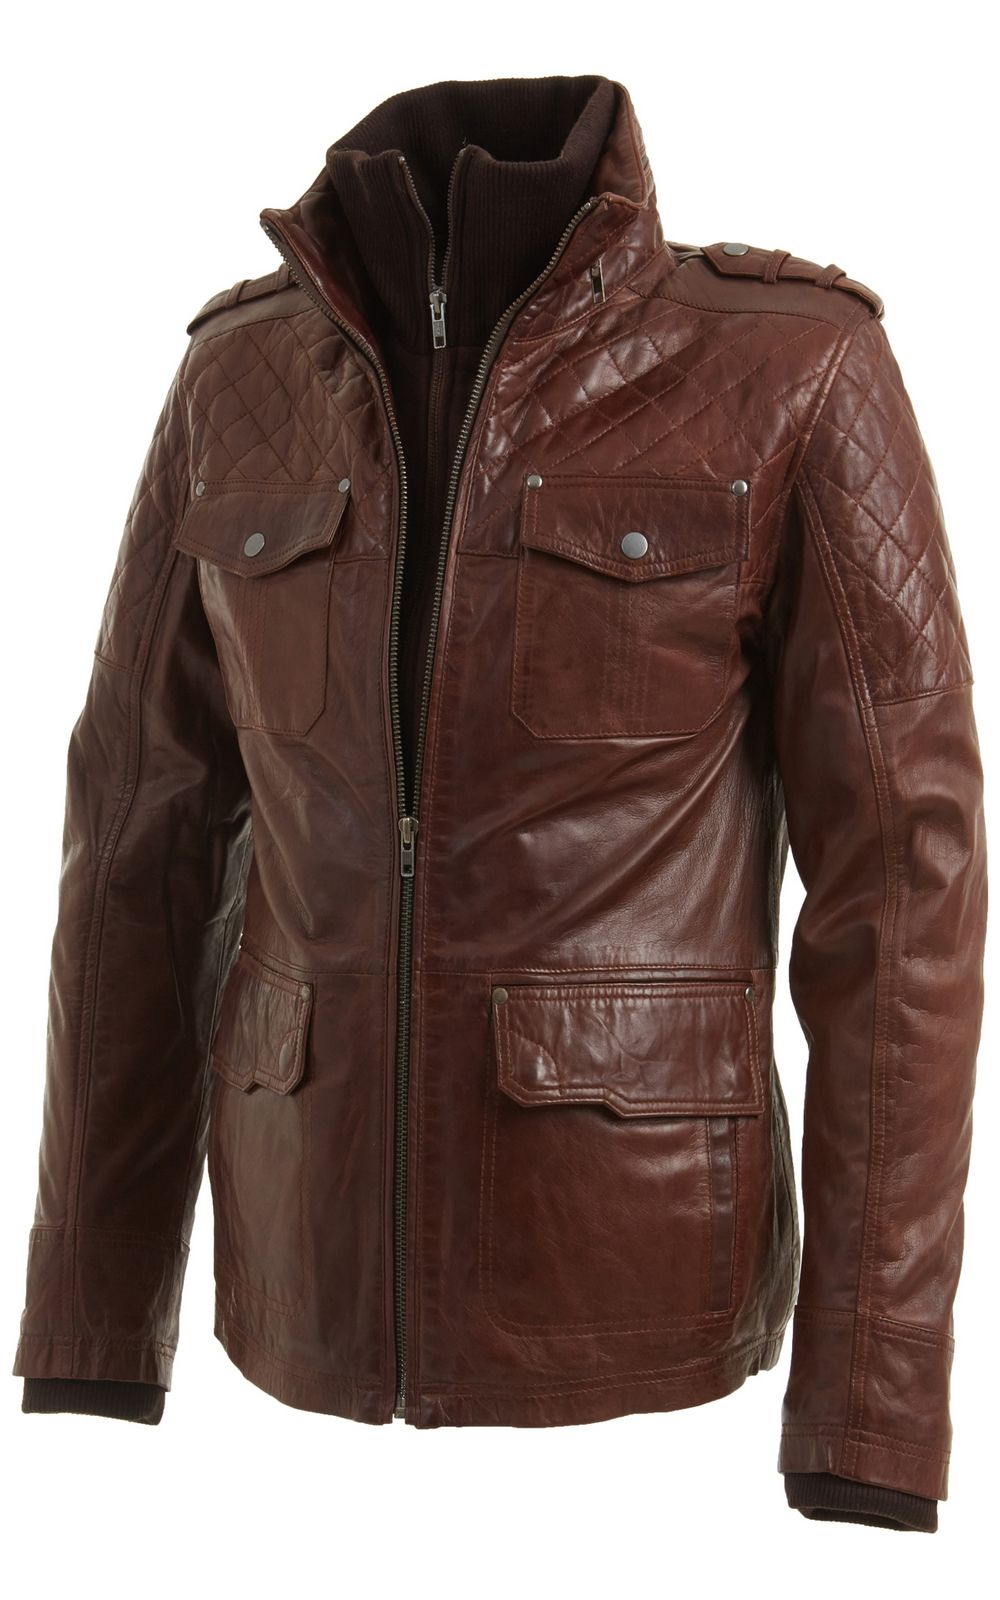 58de759ca Mens Vintage Brown Leather Biker Jacket in sizes S to 5XL. Also ...